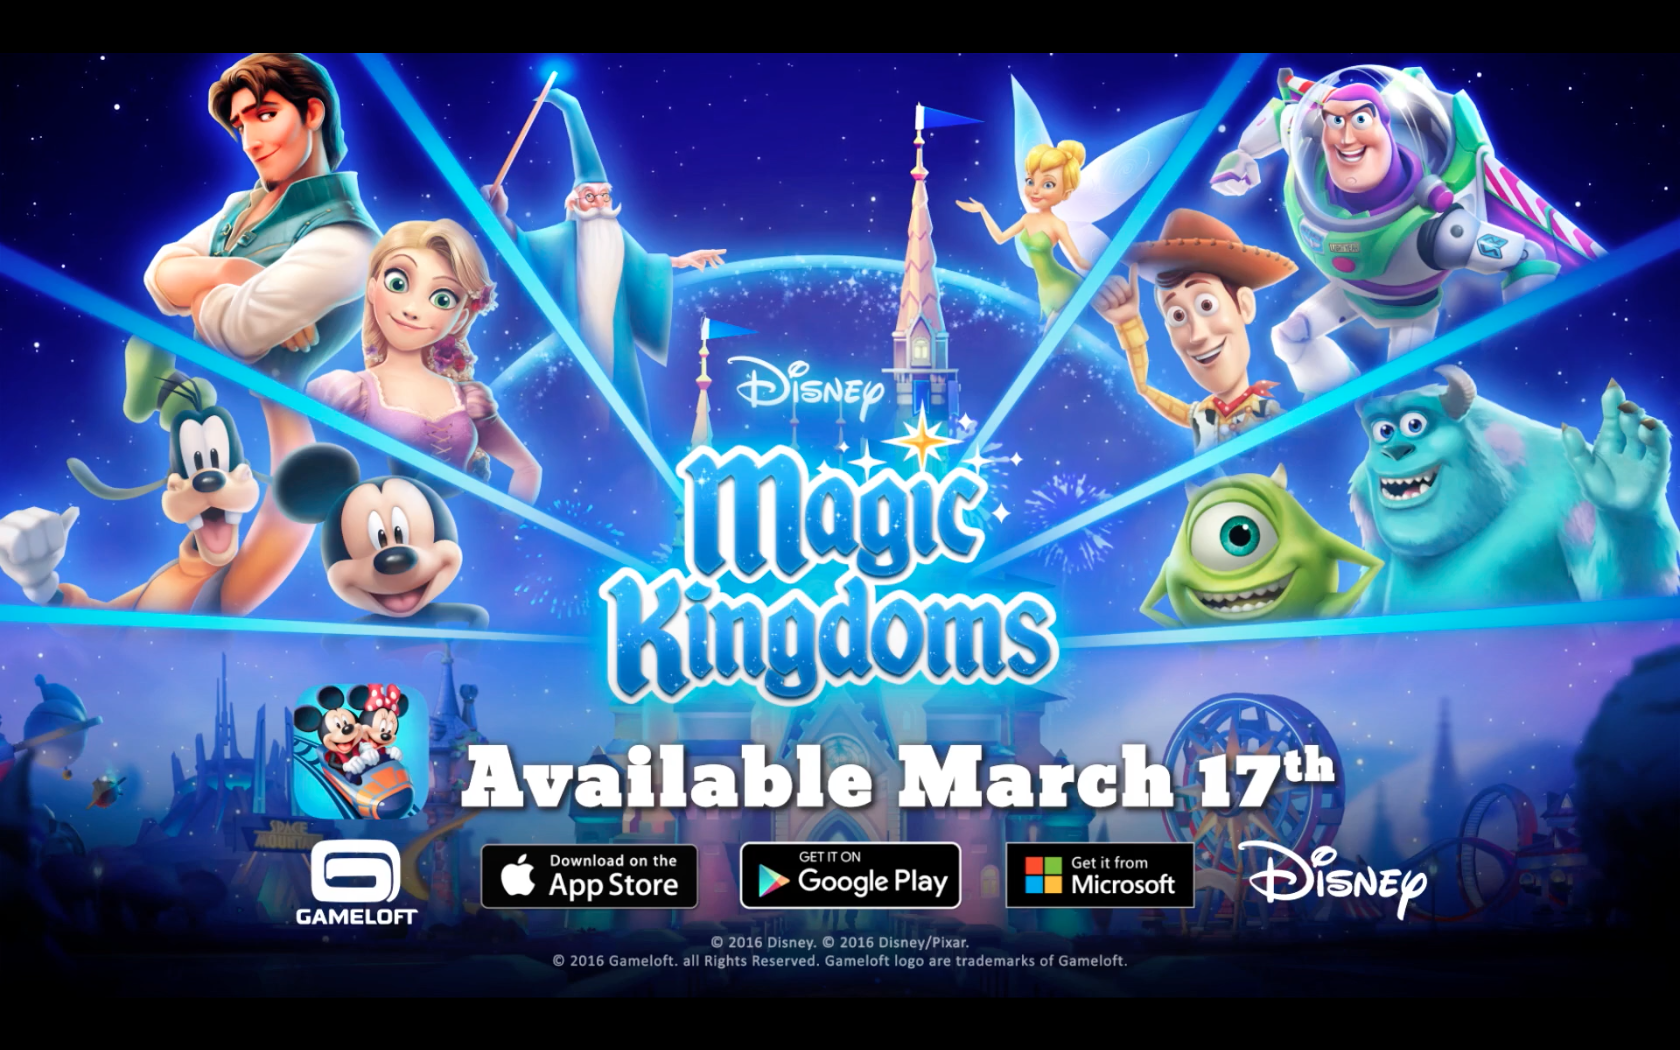 Disney Magic Kingdoms Out March 17th